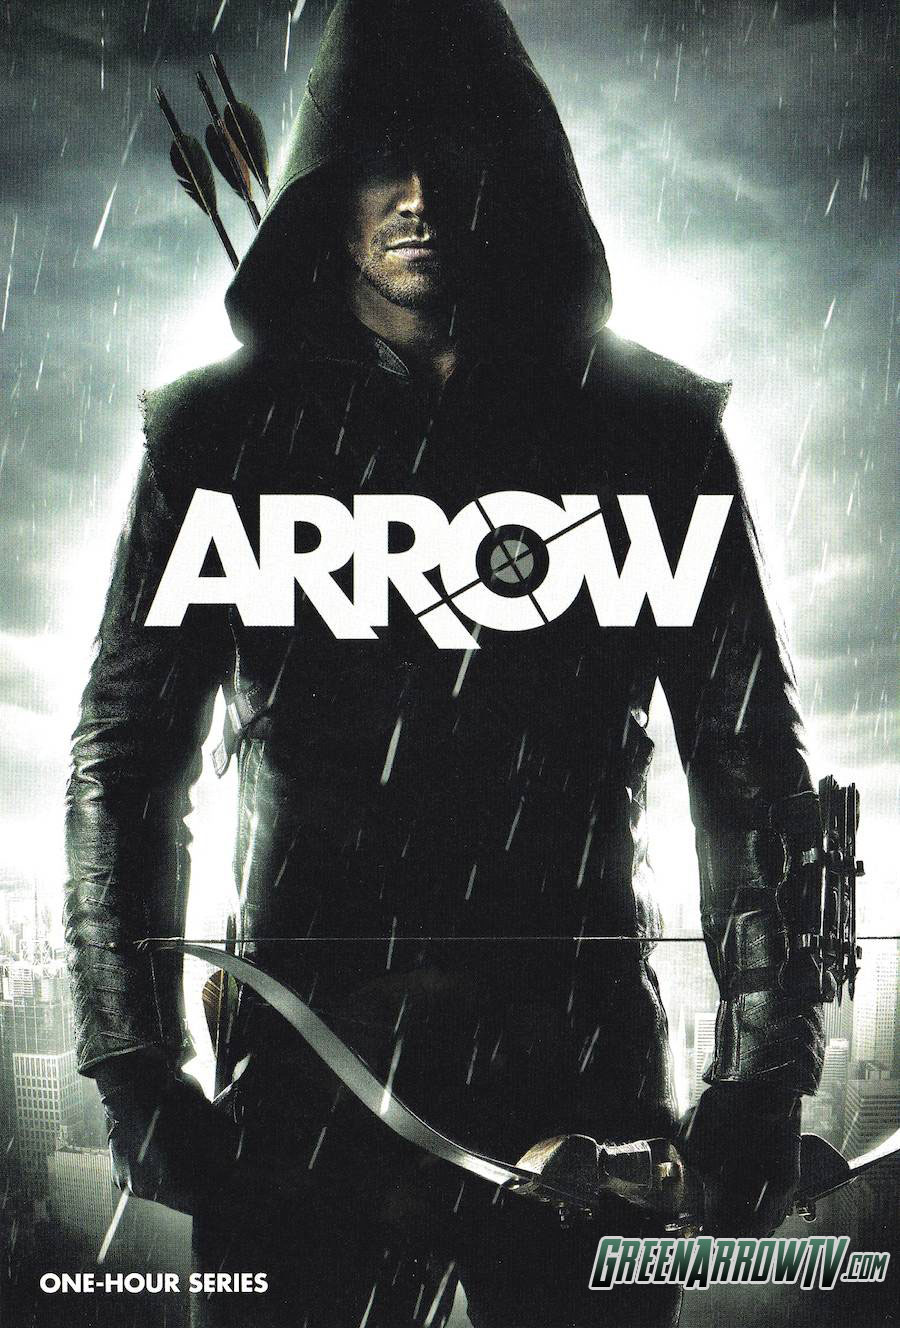 Arrow 1ª Temporada Online Legendado Completa Dublado | Assistir